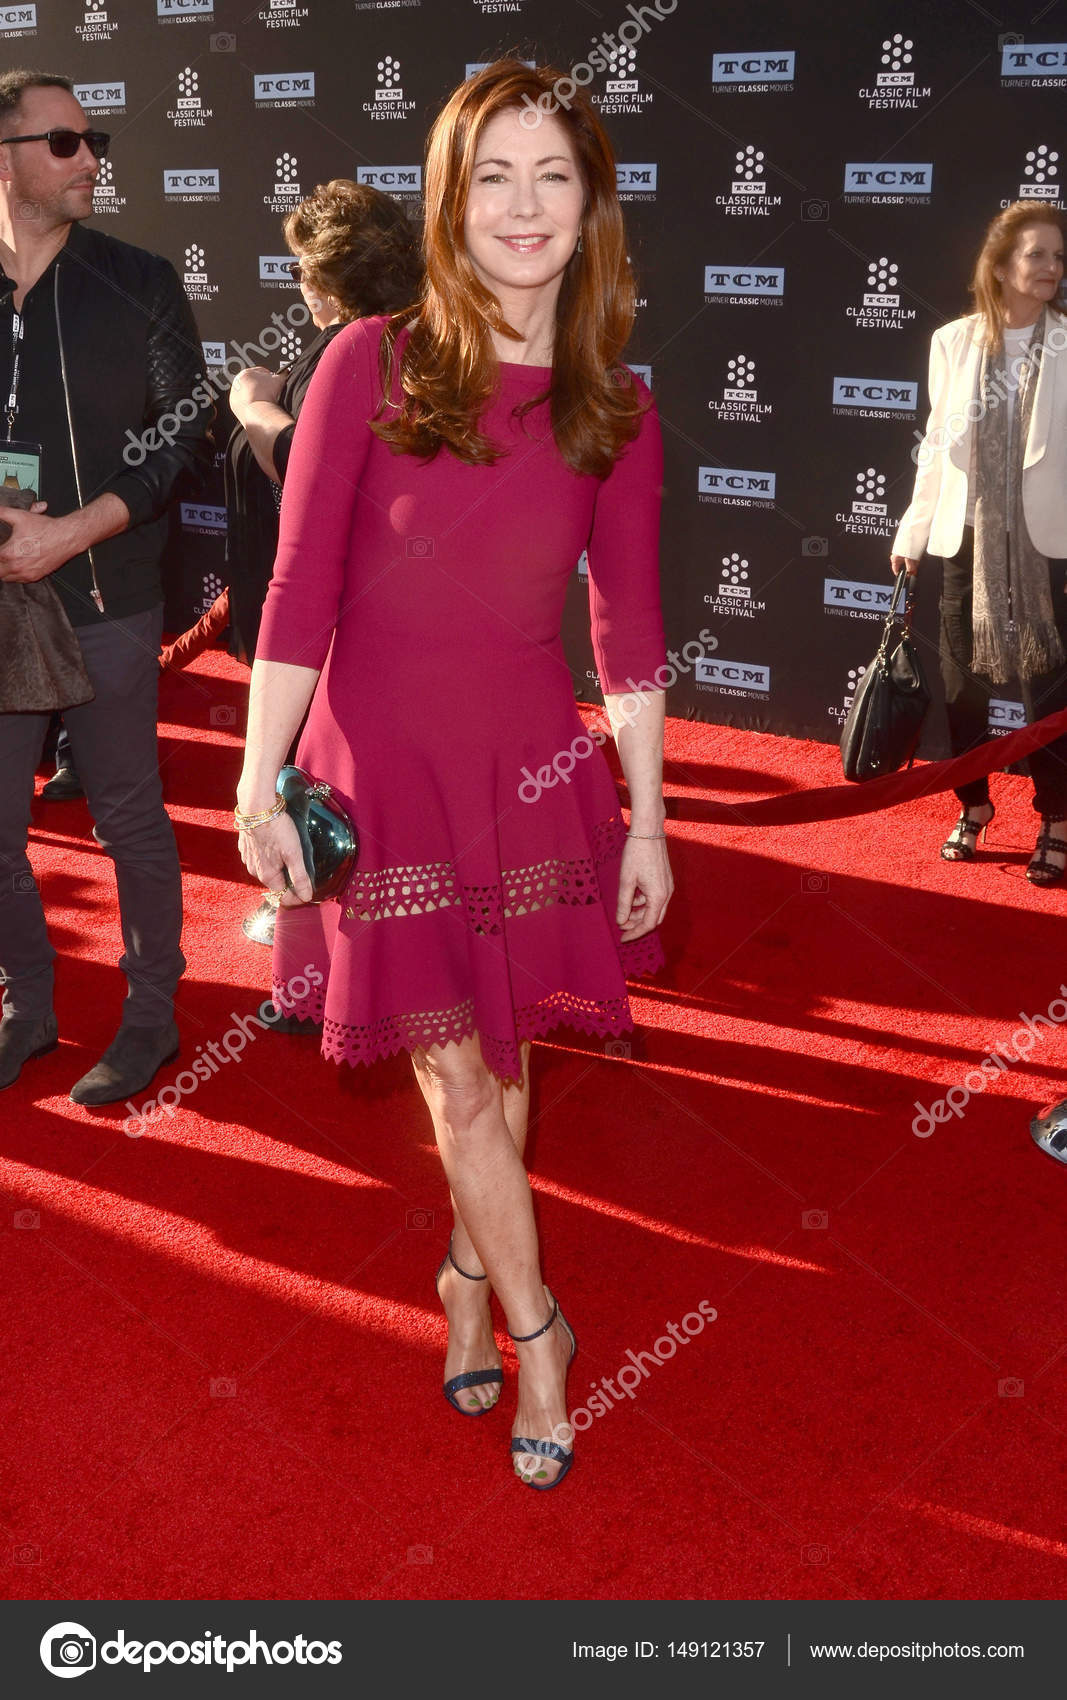 ICloud Dana Delany naked (11 photos), Tits, Leaked, Boobs, cleavage 2019